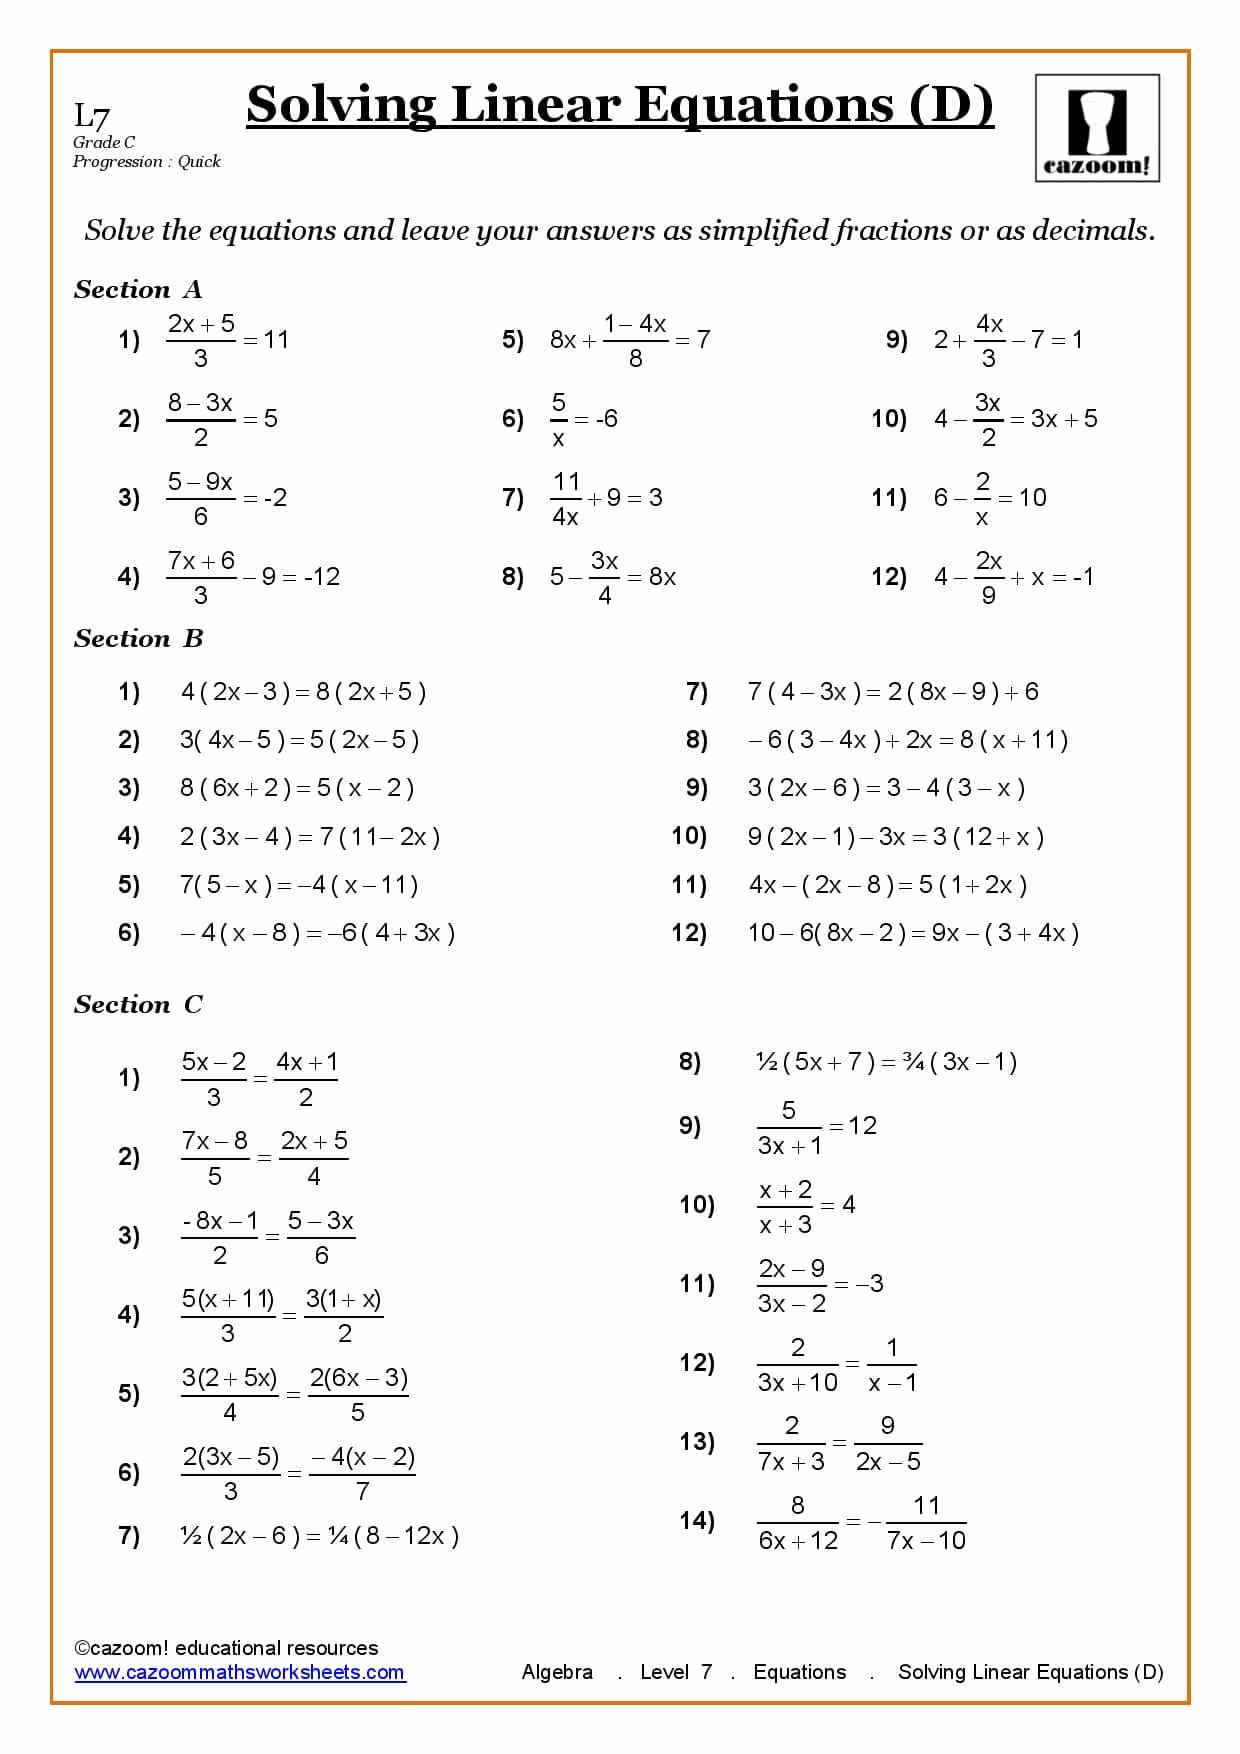 Algebra 2 Worksheet Pdf Best Of solving Linear Equations